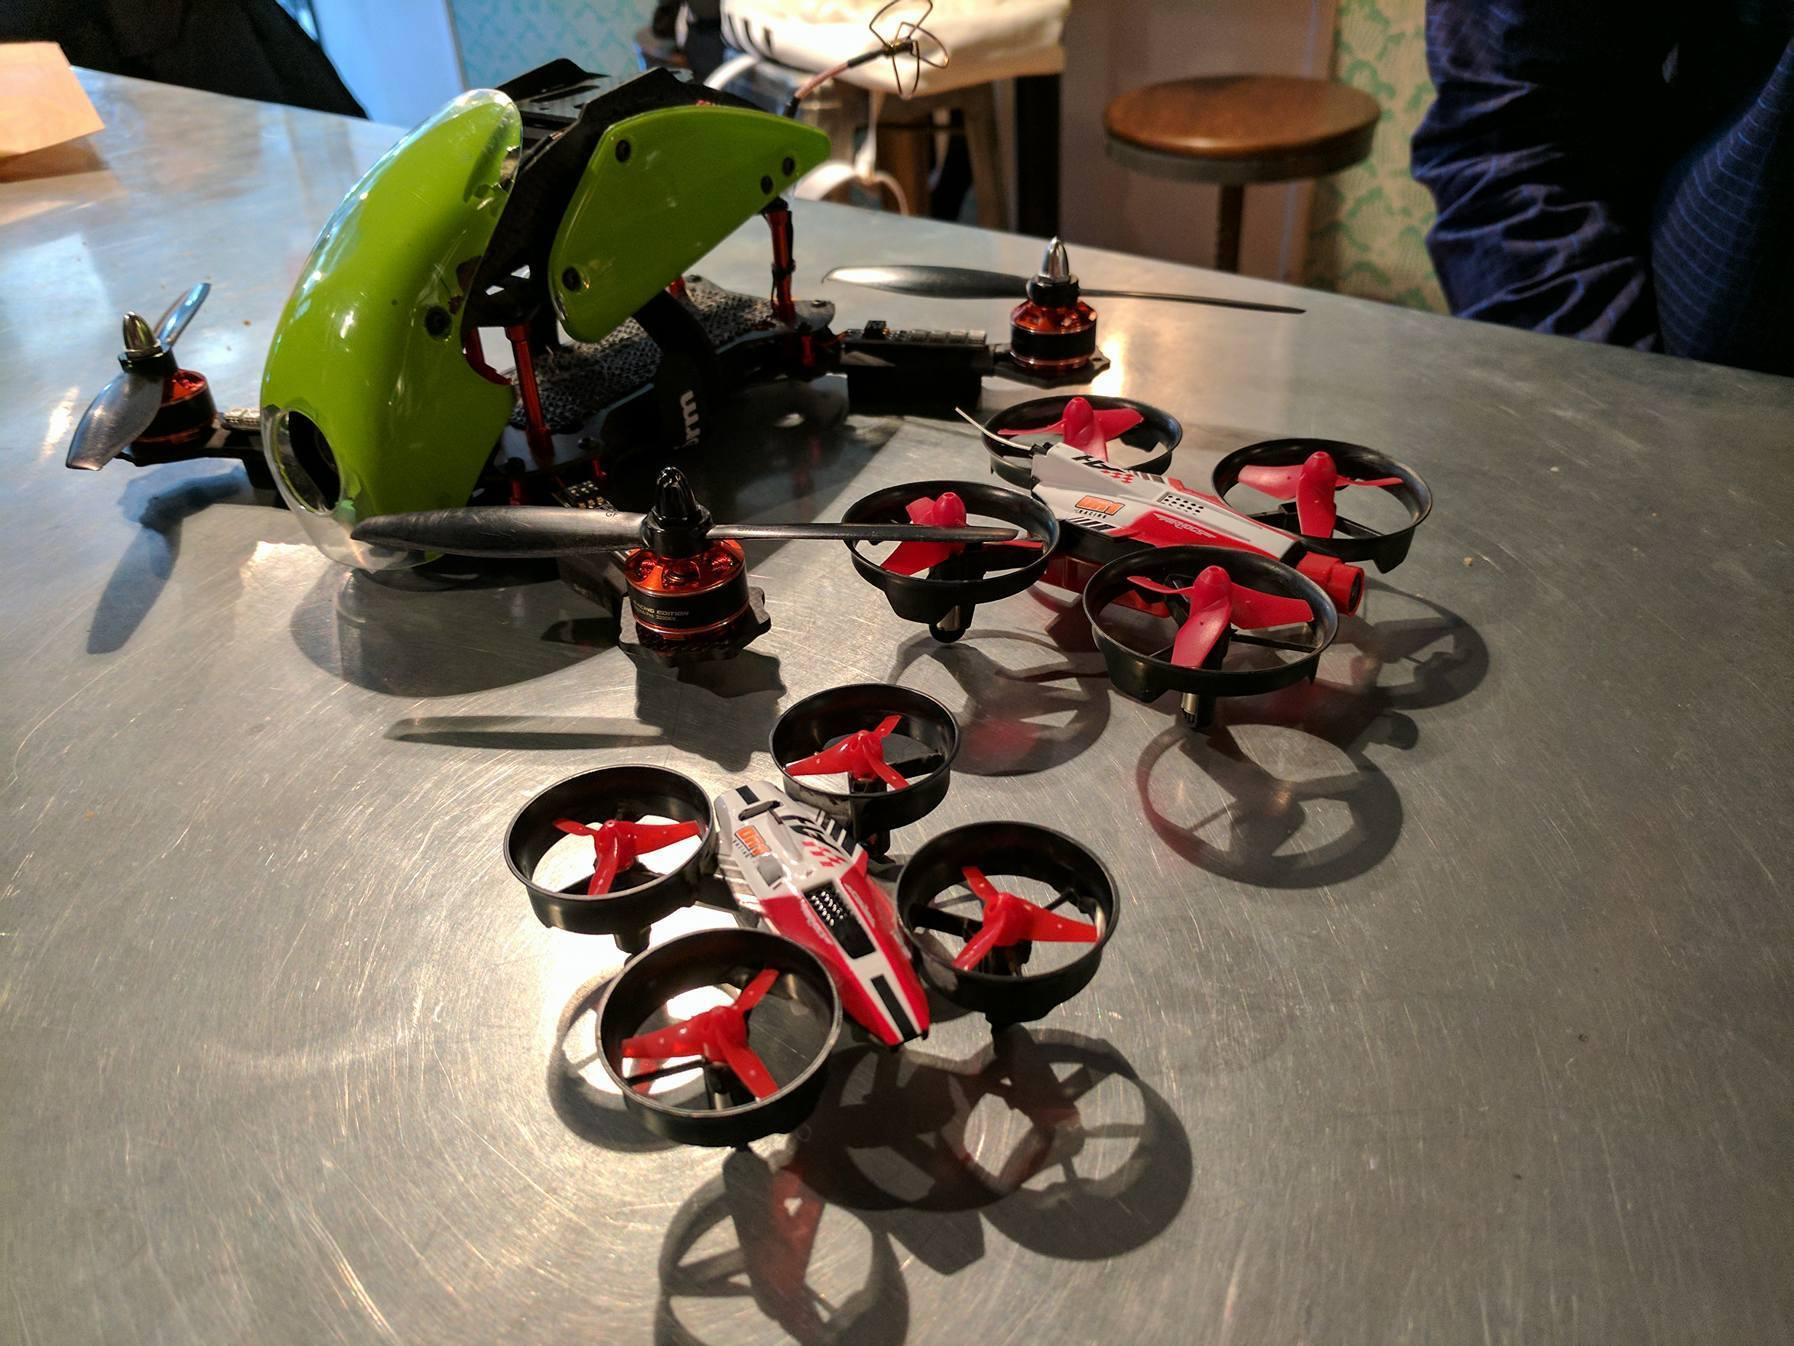 The green drone in the back is a regular racing drone, which can accelerate from 0 to 60 mph.  The red and black drone in the back is a micro drone, also used for racing. The drone in the front is an entry-level drone, which is smaller than the other two drones.  Unlike the other two drones, the entry-level drone does not have a camera and is flown at line-of-sight.